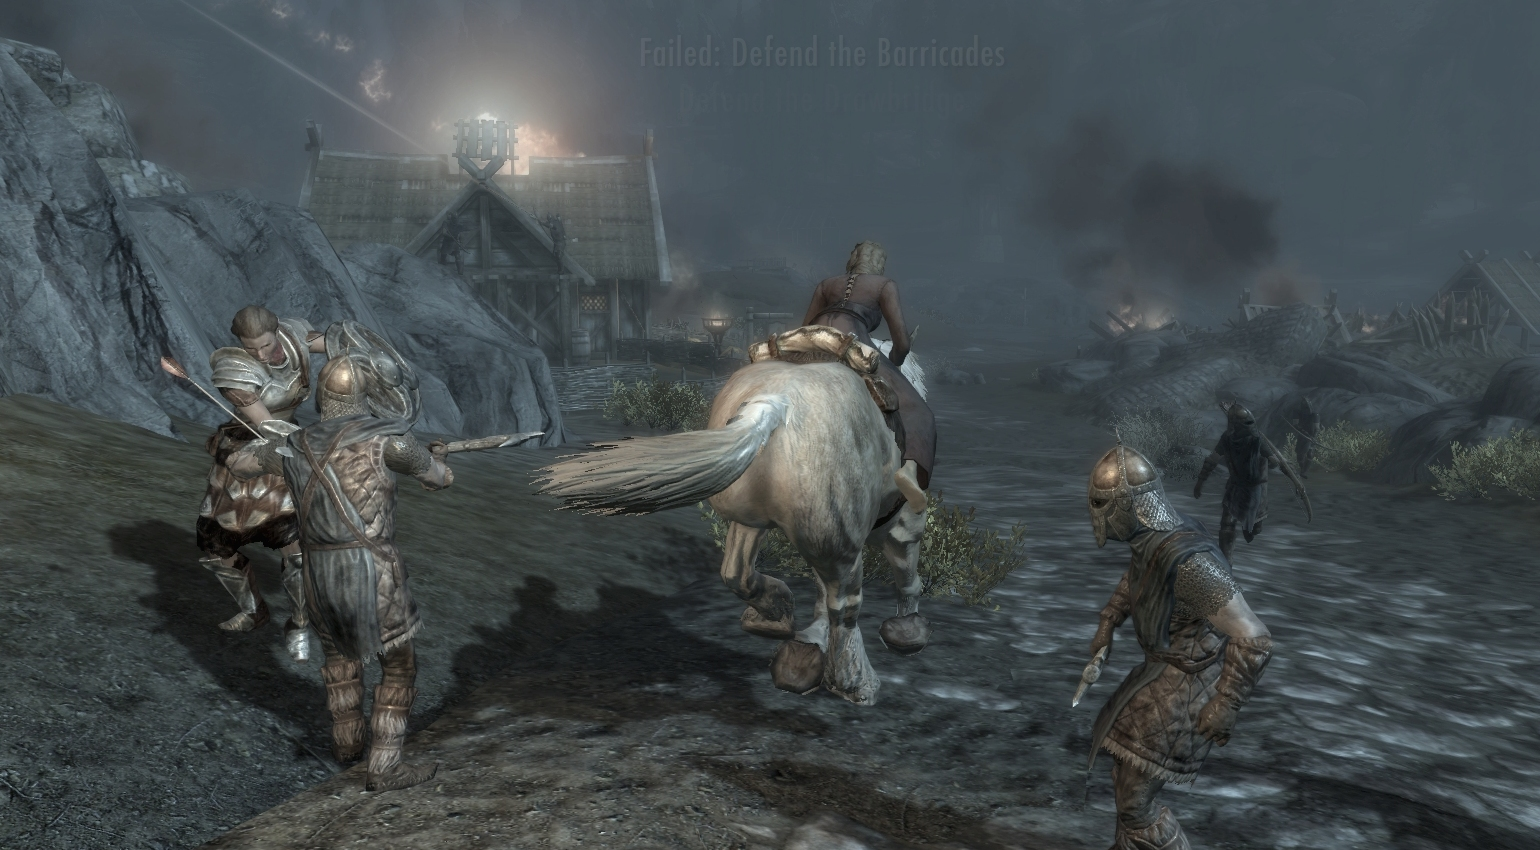 An Illusionist in Skyrim, part 15: the battle of Whiterun | PC Gamer